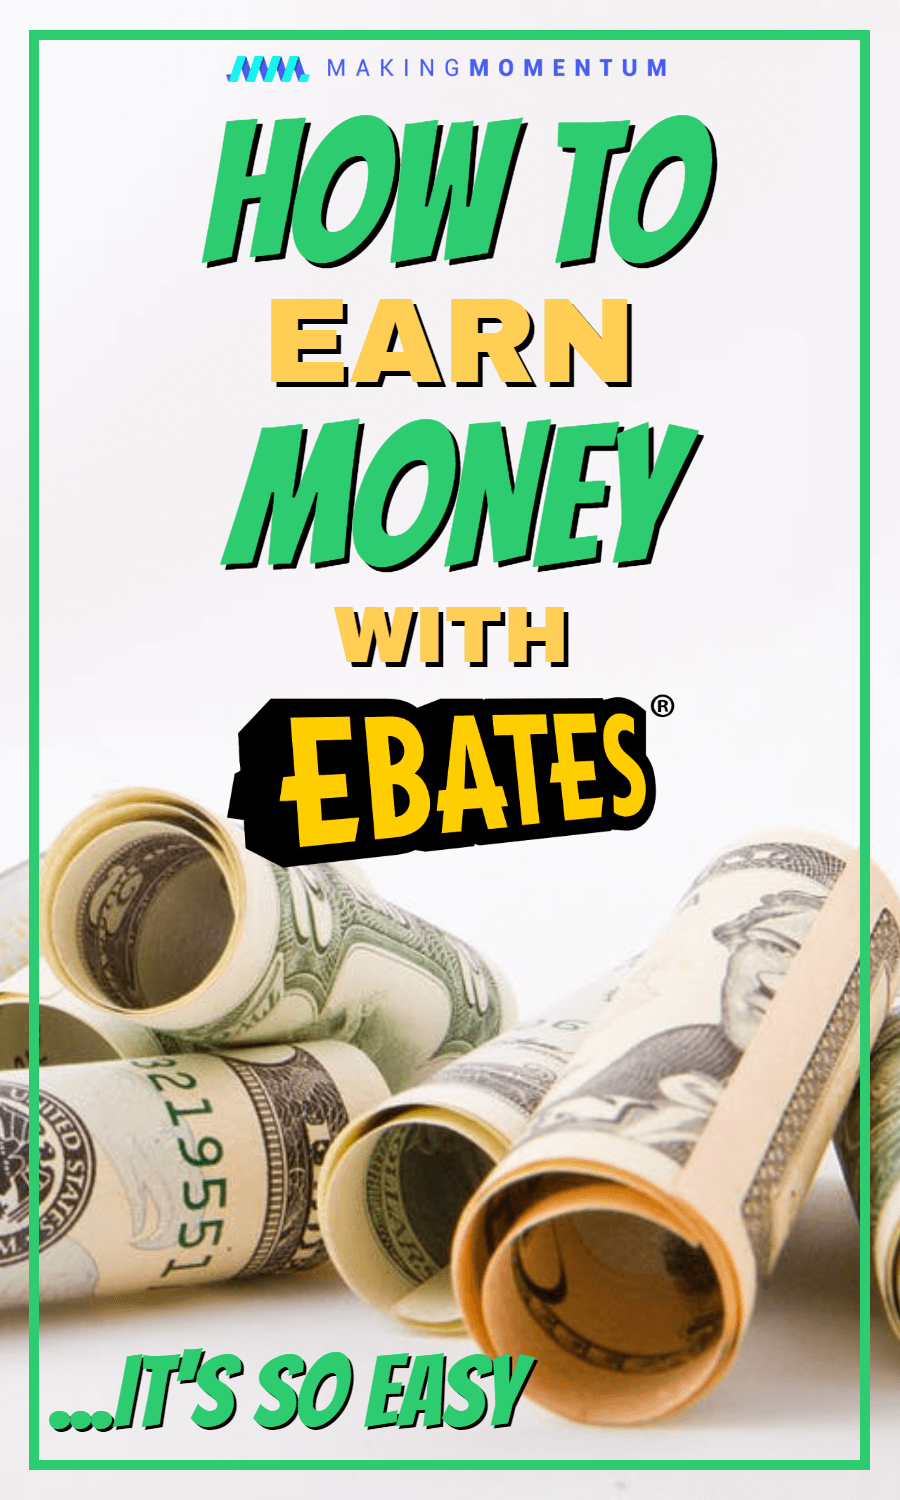 ebates review how to earn free money online with the cash back app site side hustles how. Black Bedroom Furniture Sets. Home Design Ideas